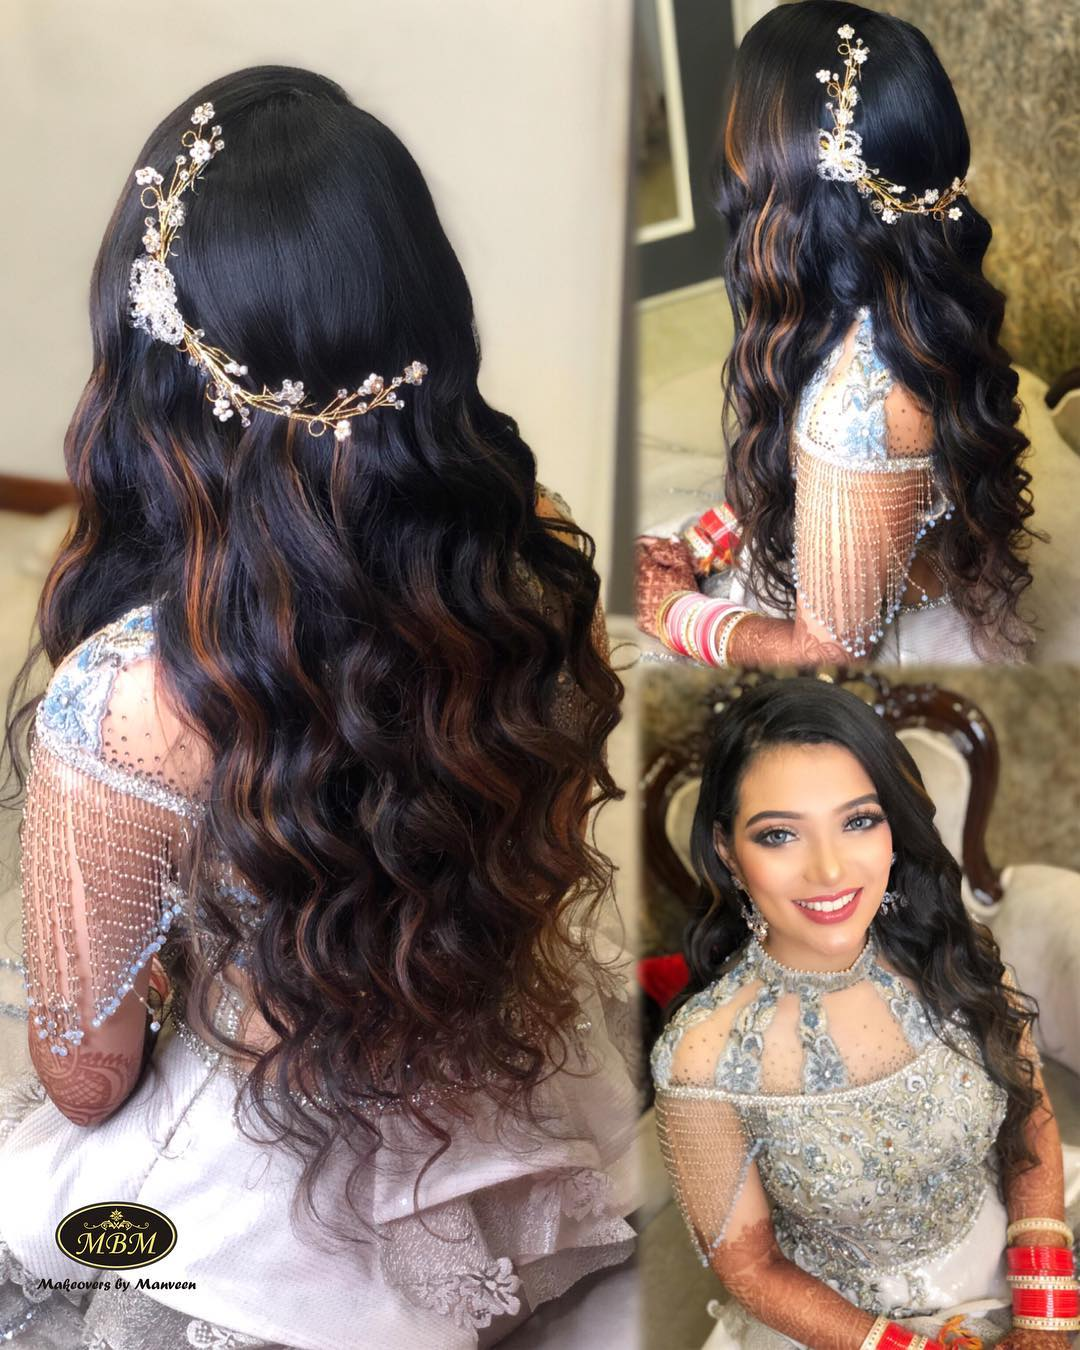 These Open Hairstyle For Bridal Hairdo Will Make You Ditch Buns